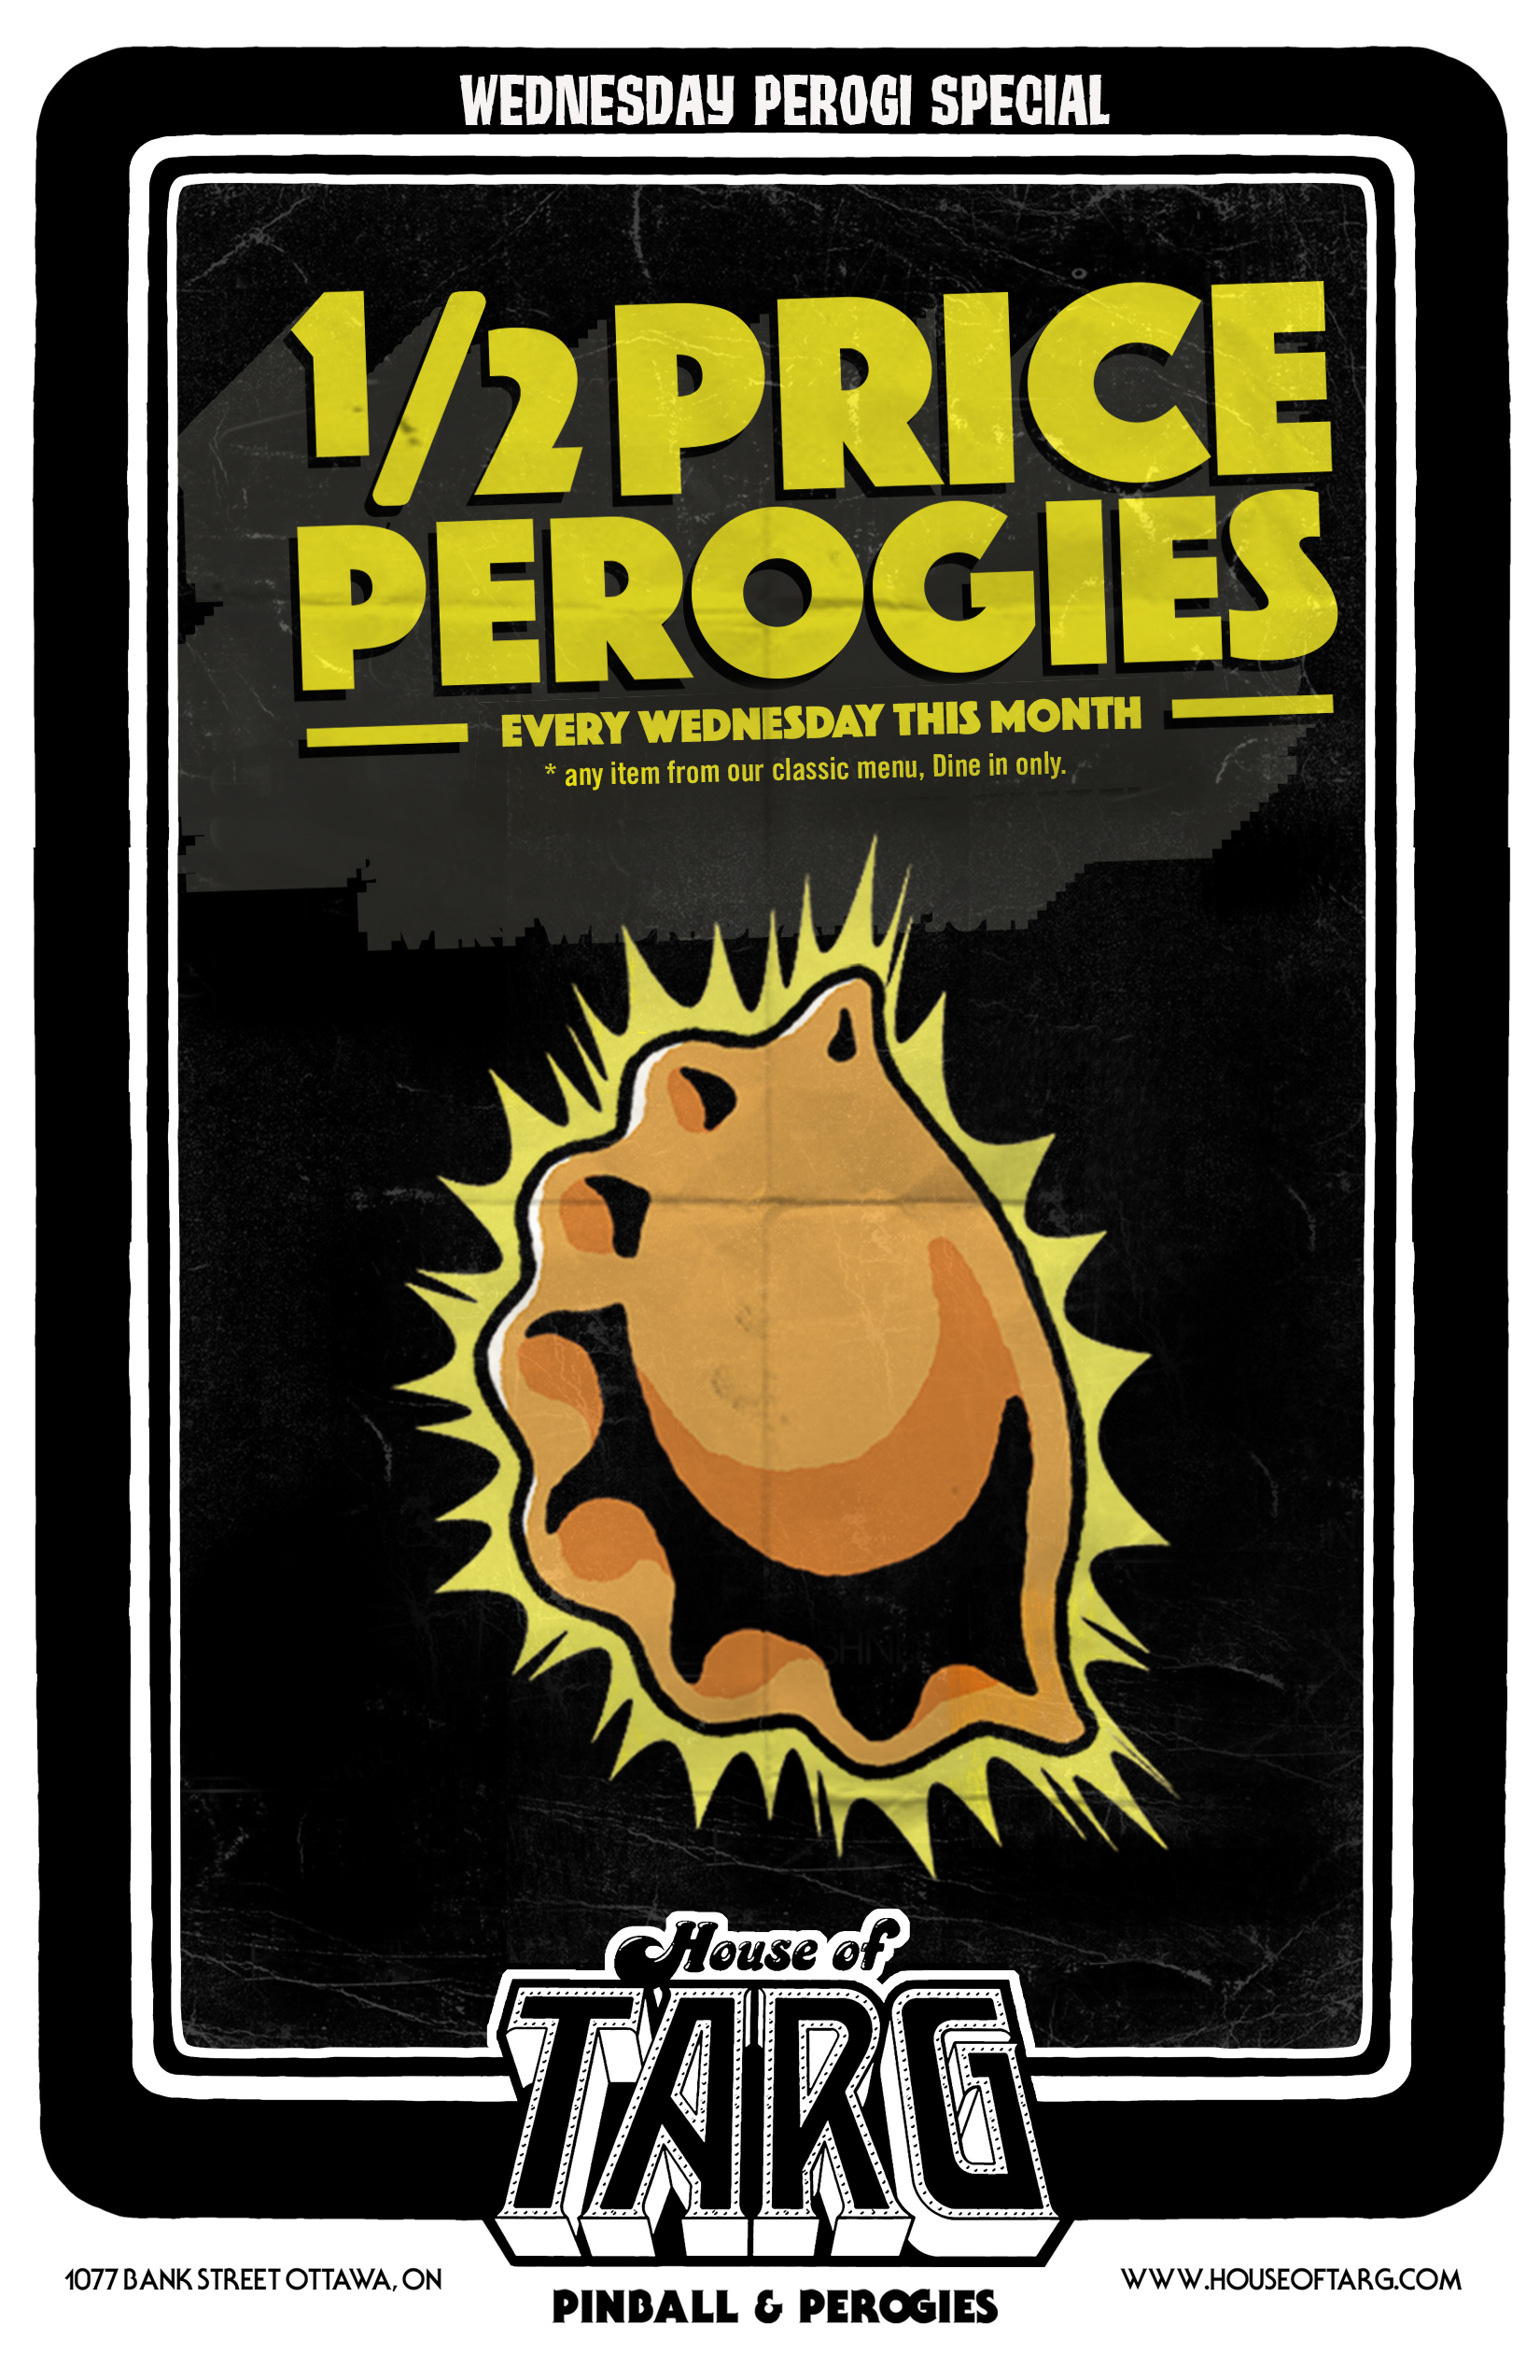 $1 Off Perogies from our classic menu